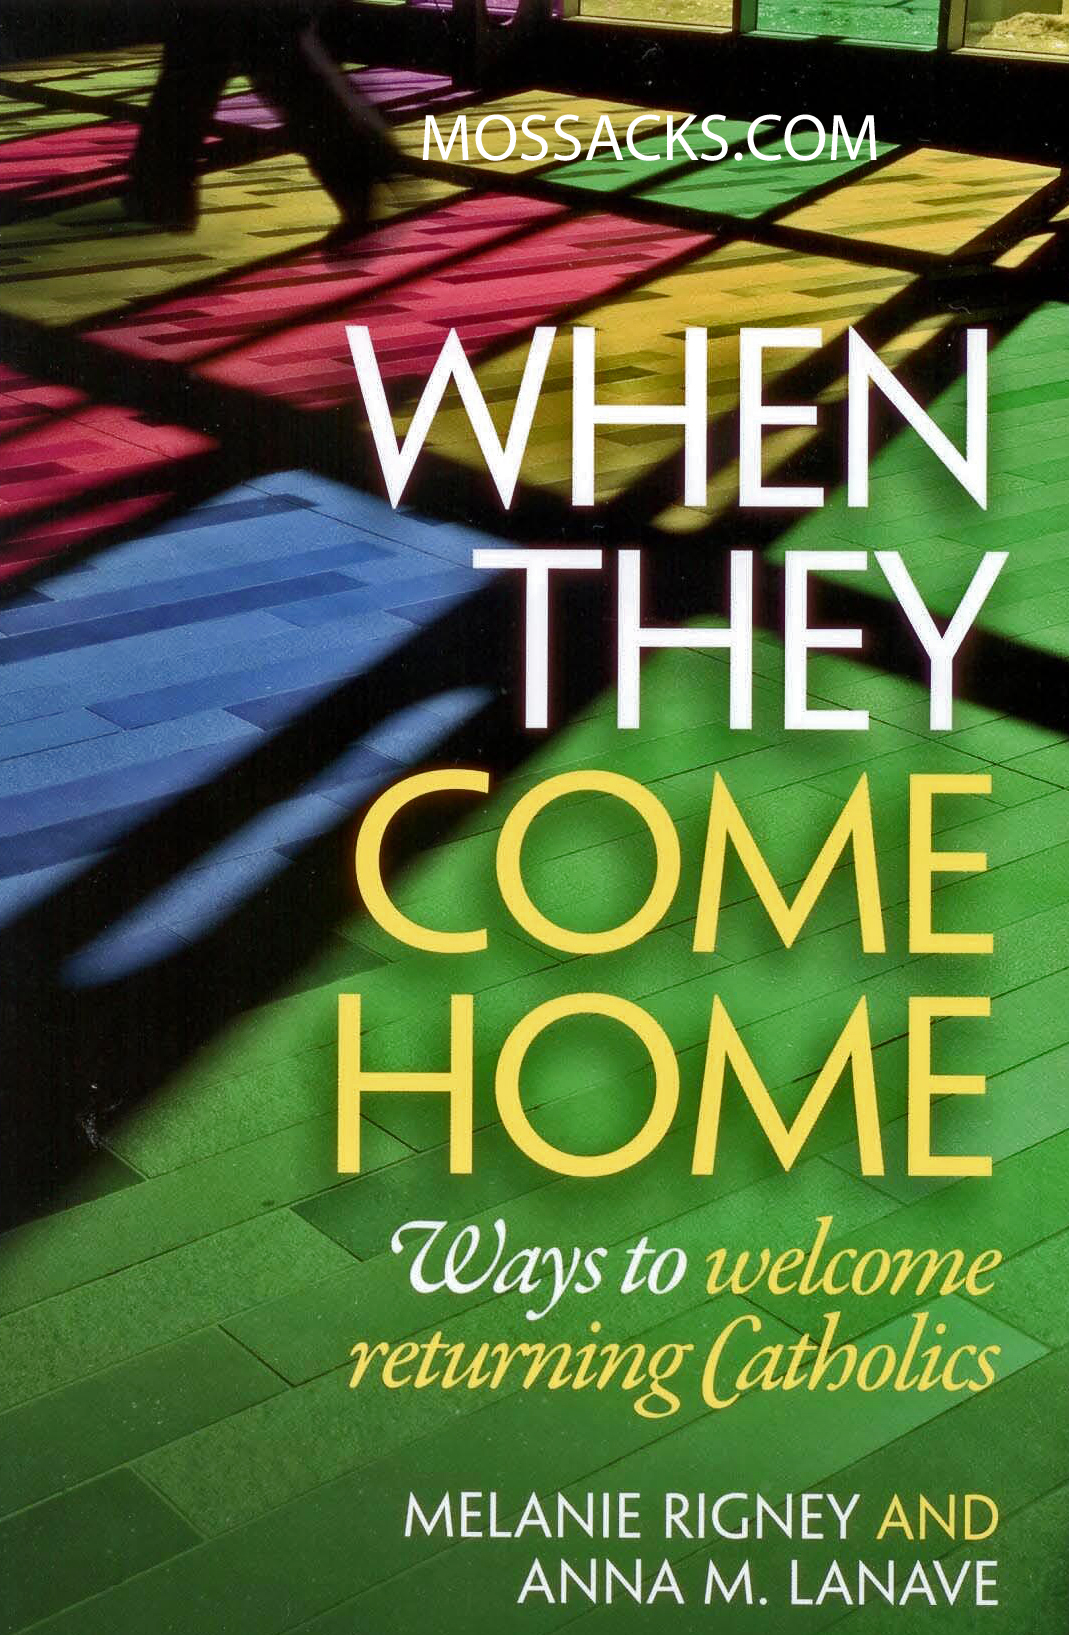 When They Come Home by Melanie Rigney and Anna M. Lanave